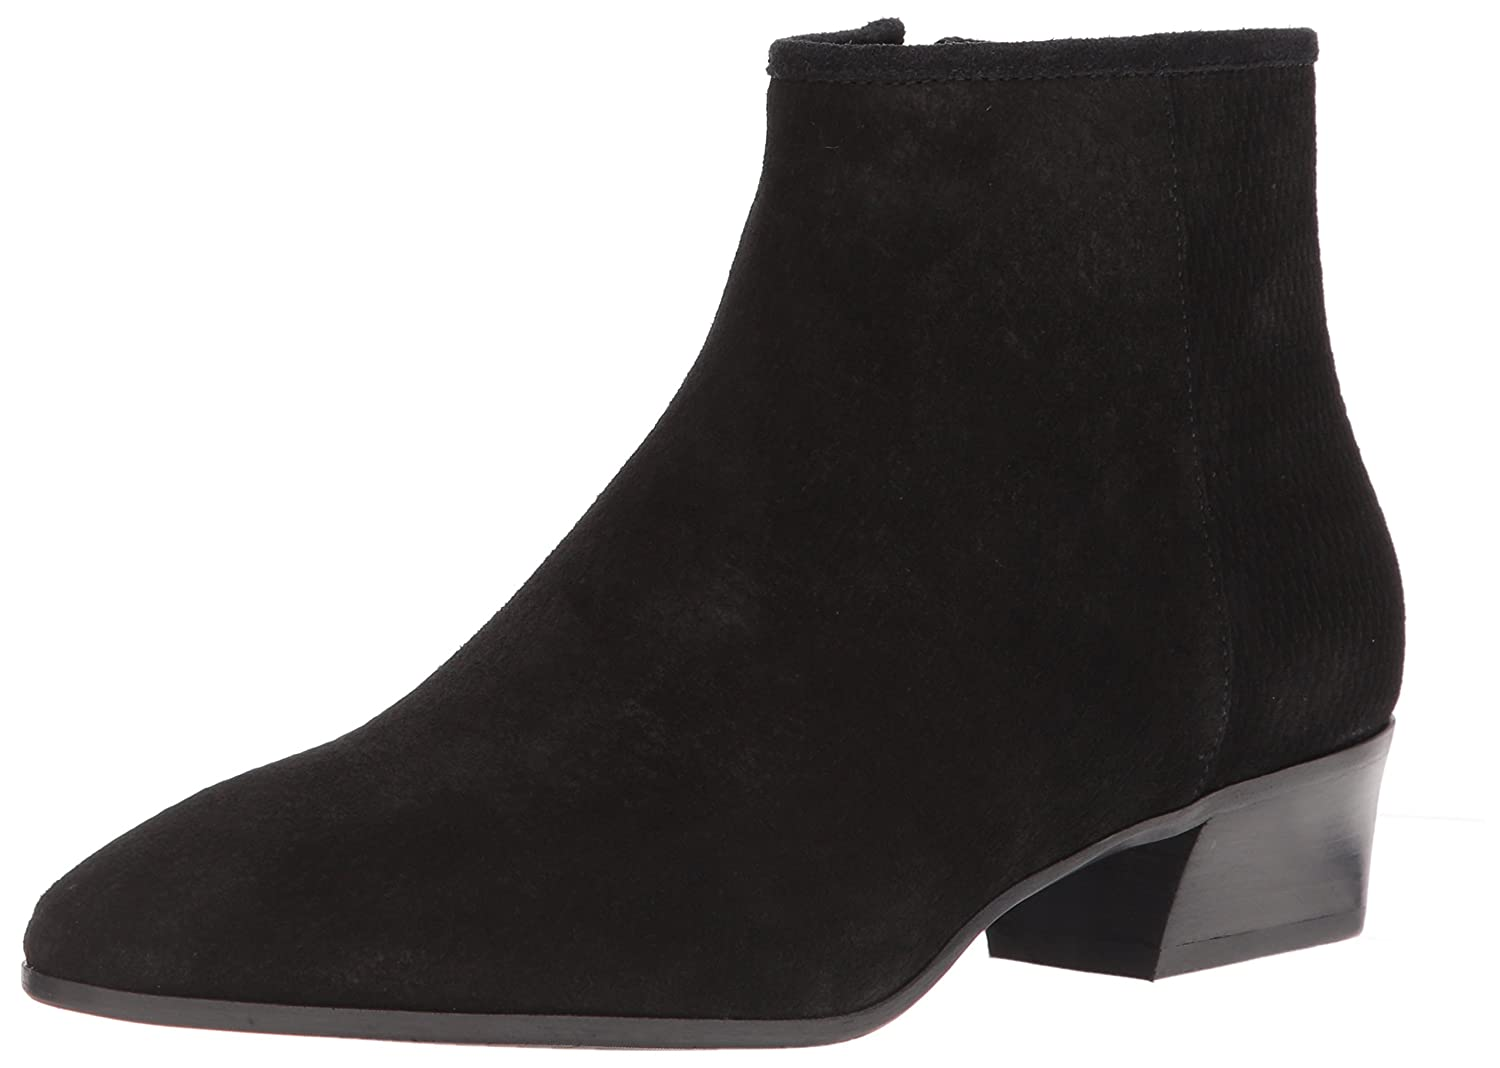 Aquatalia Women's Fire Perforated Suede Ankle Boot B071KCPNTQ 8.5 M M US|Black